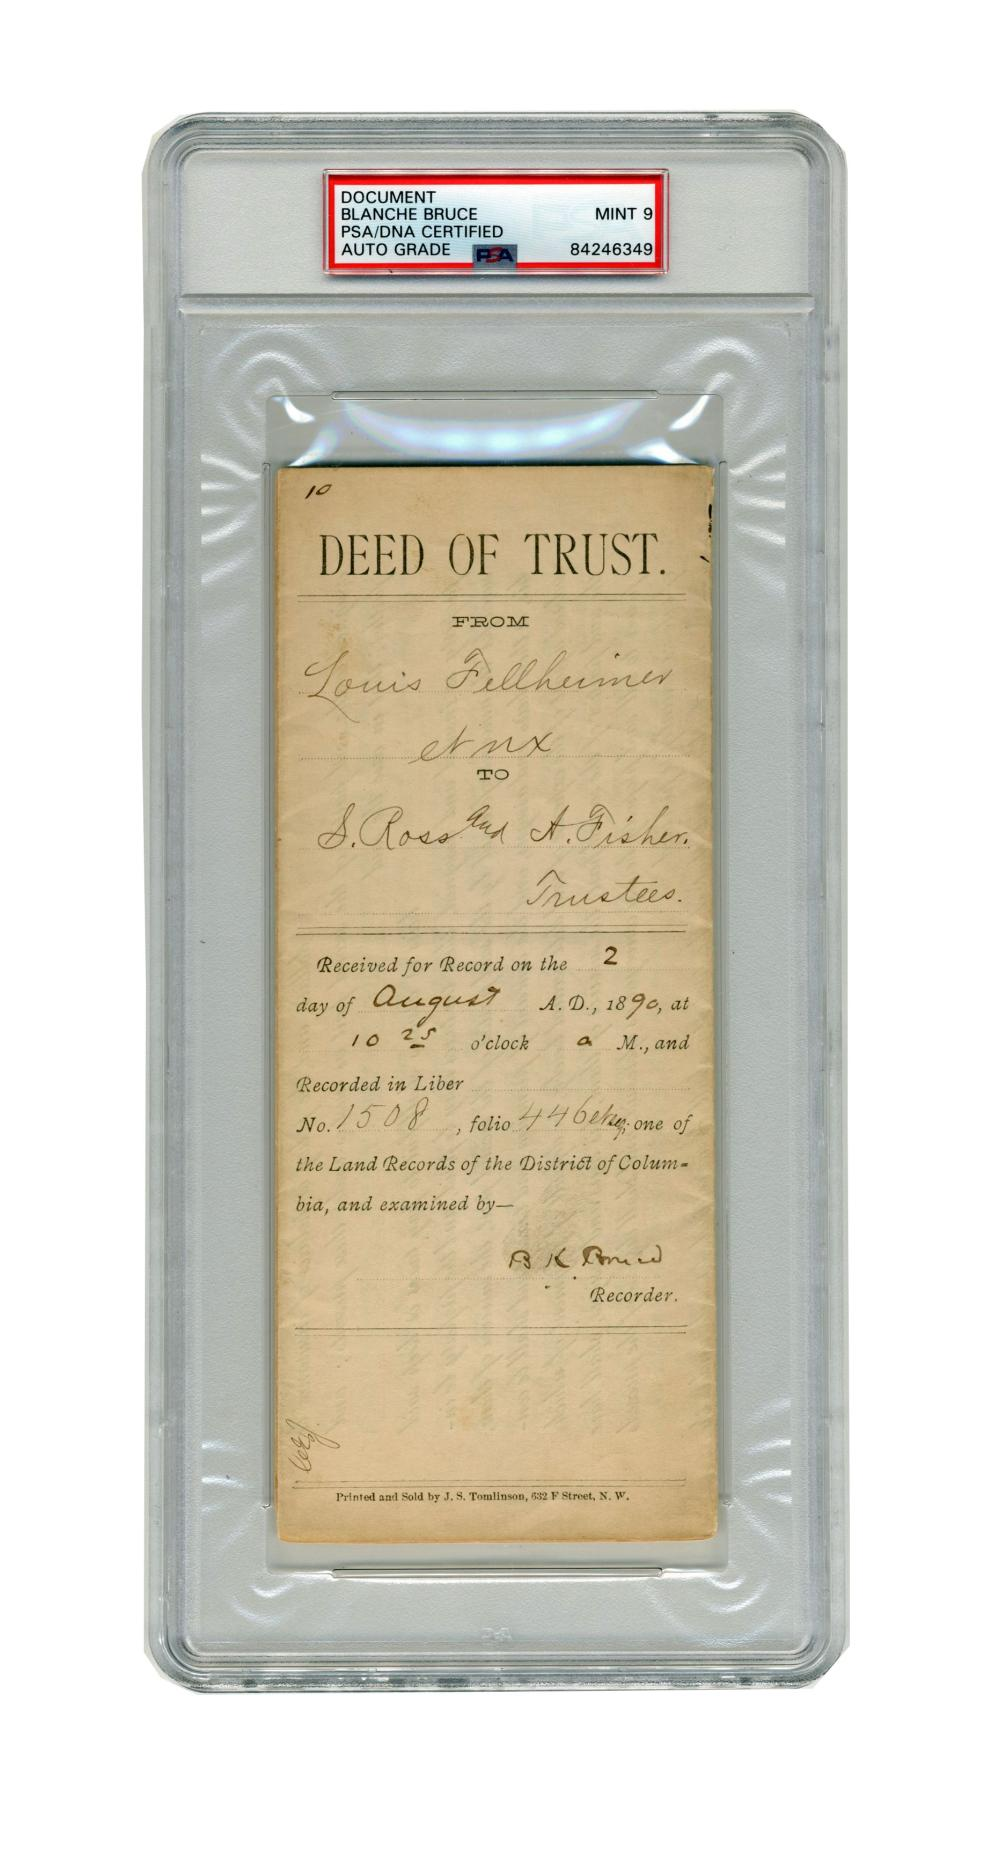 Blanche Bruce Signed Land Deed PSA Slabbed MINT 9 - First Elected African American Senator to Serve Full Term